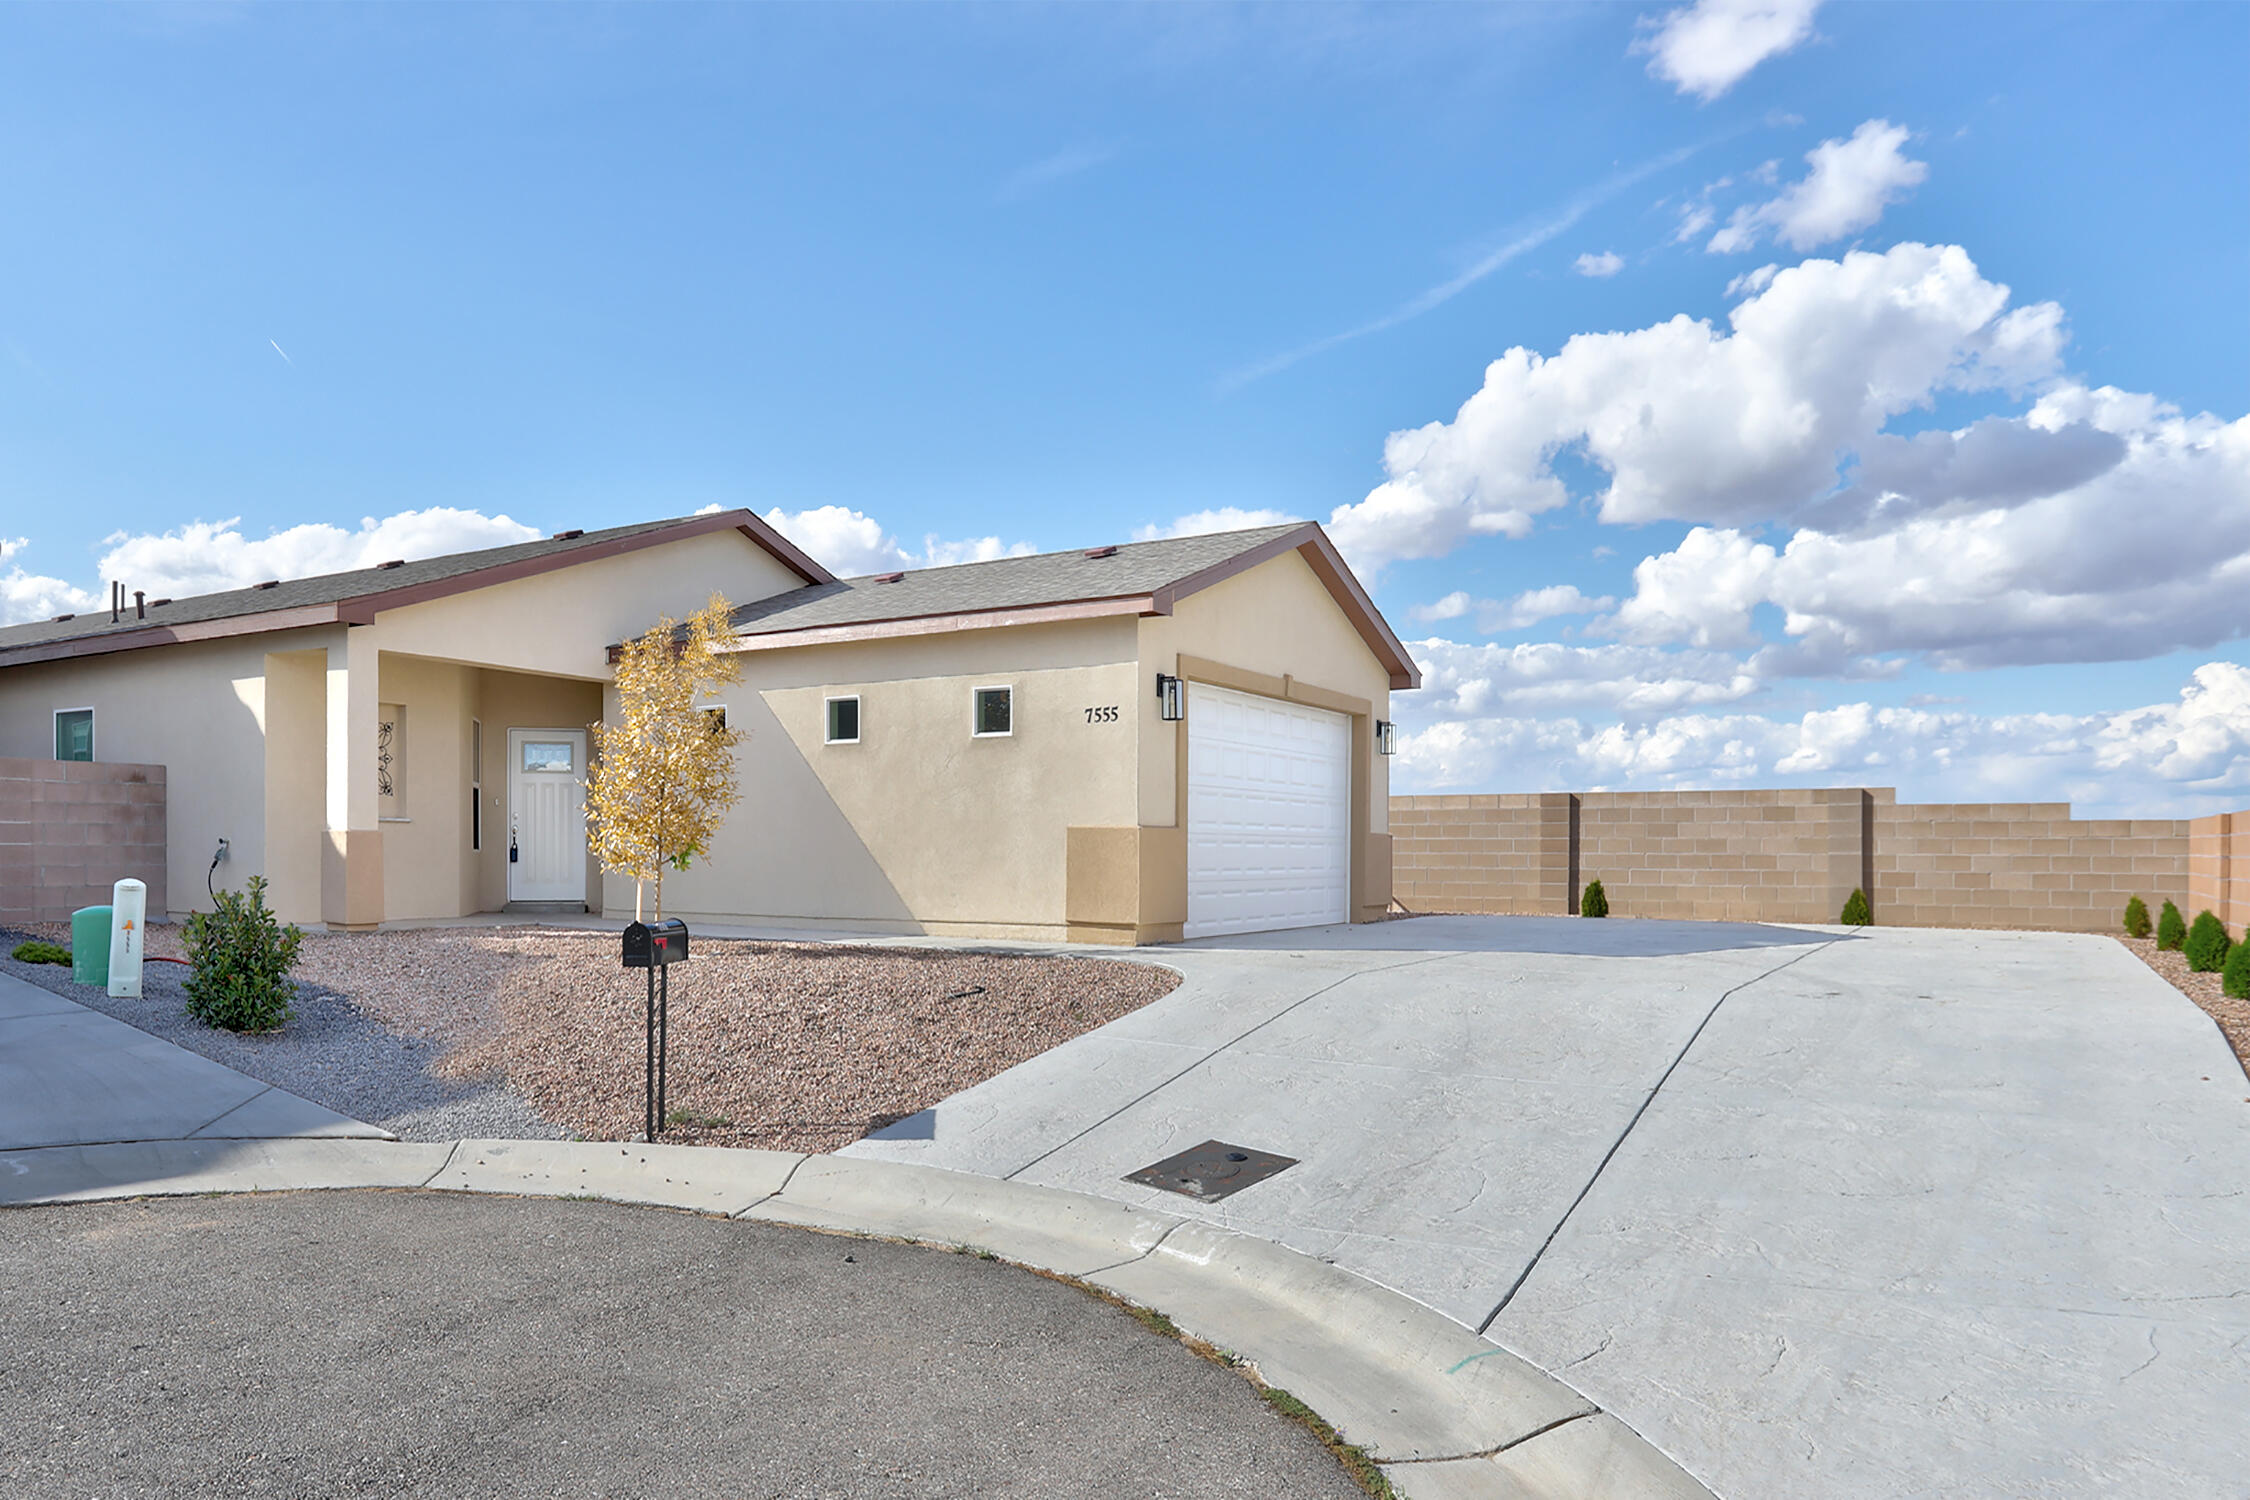 Gorgeous Ventana Ranch property built in 2018. This bright and modern open floorplan home boasts 9-foot ceilings, REFRIGERATED AIR, and beautiful granite counter tops in the kitchen and bathrooms. A great kitchen with Samsung appliance package, and a large kitchen island. Living room has a gas log fire place with a quartz hearth. The windowsills and laundry counter are also quartz. Master bath includes soaking tub, walk-in closet, double sinks, and a granite sitting bench in shower. Check out this stunning home today!